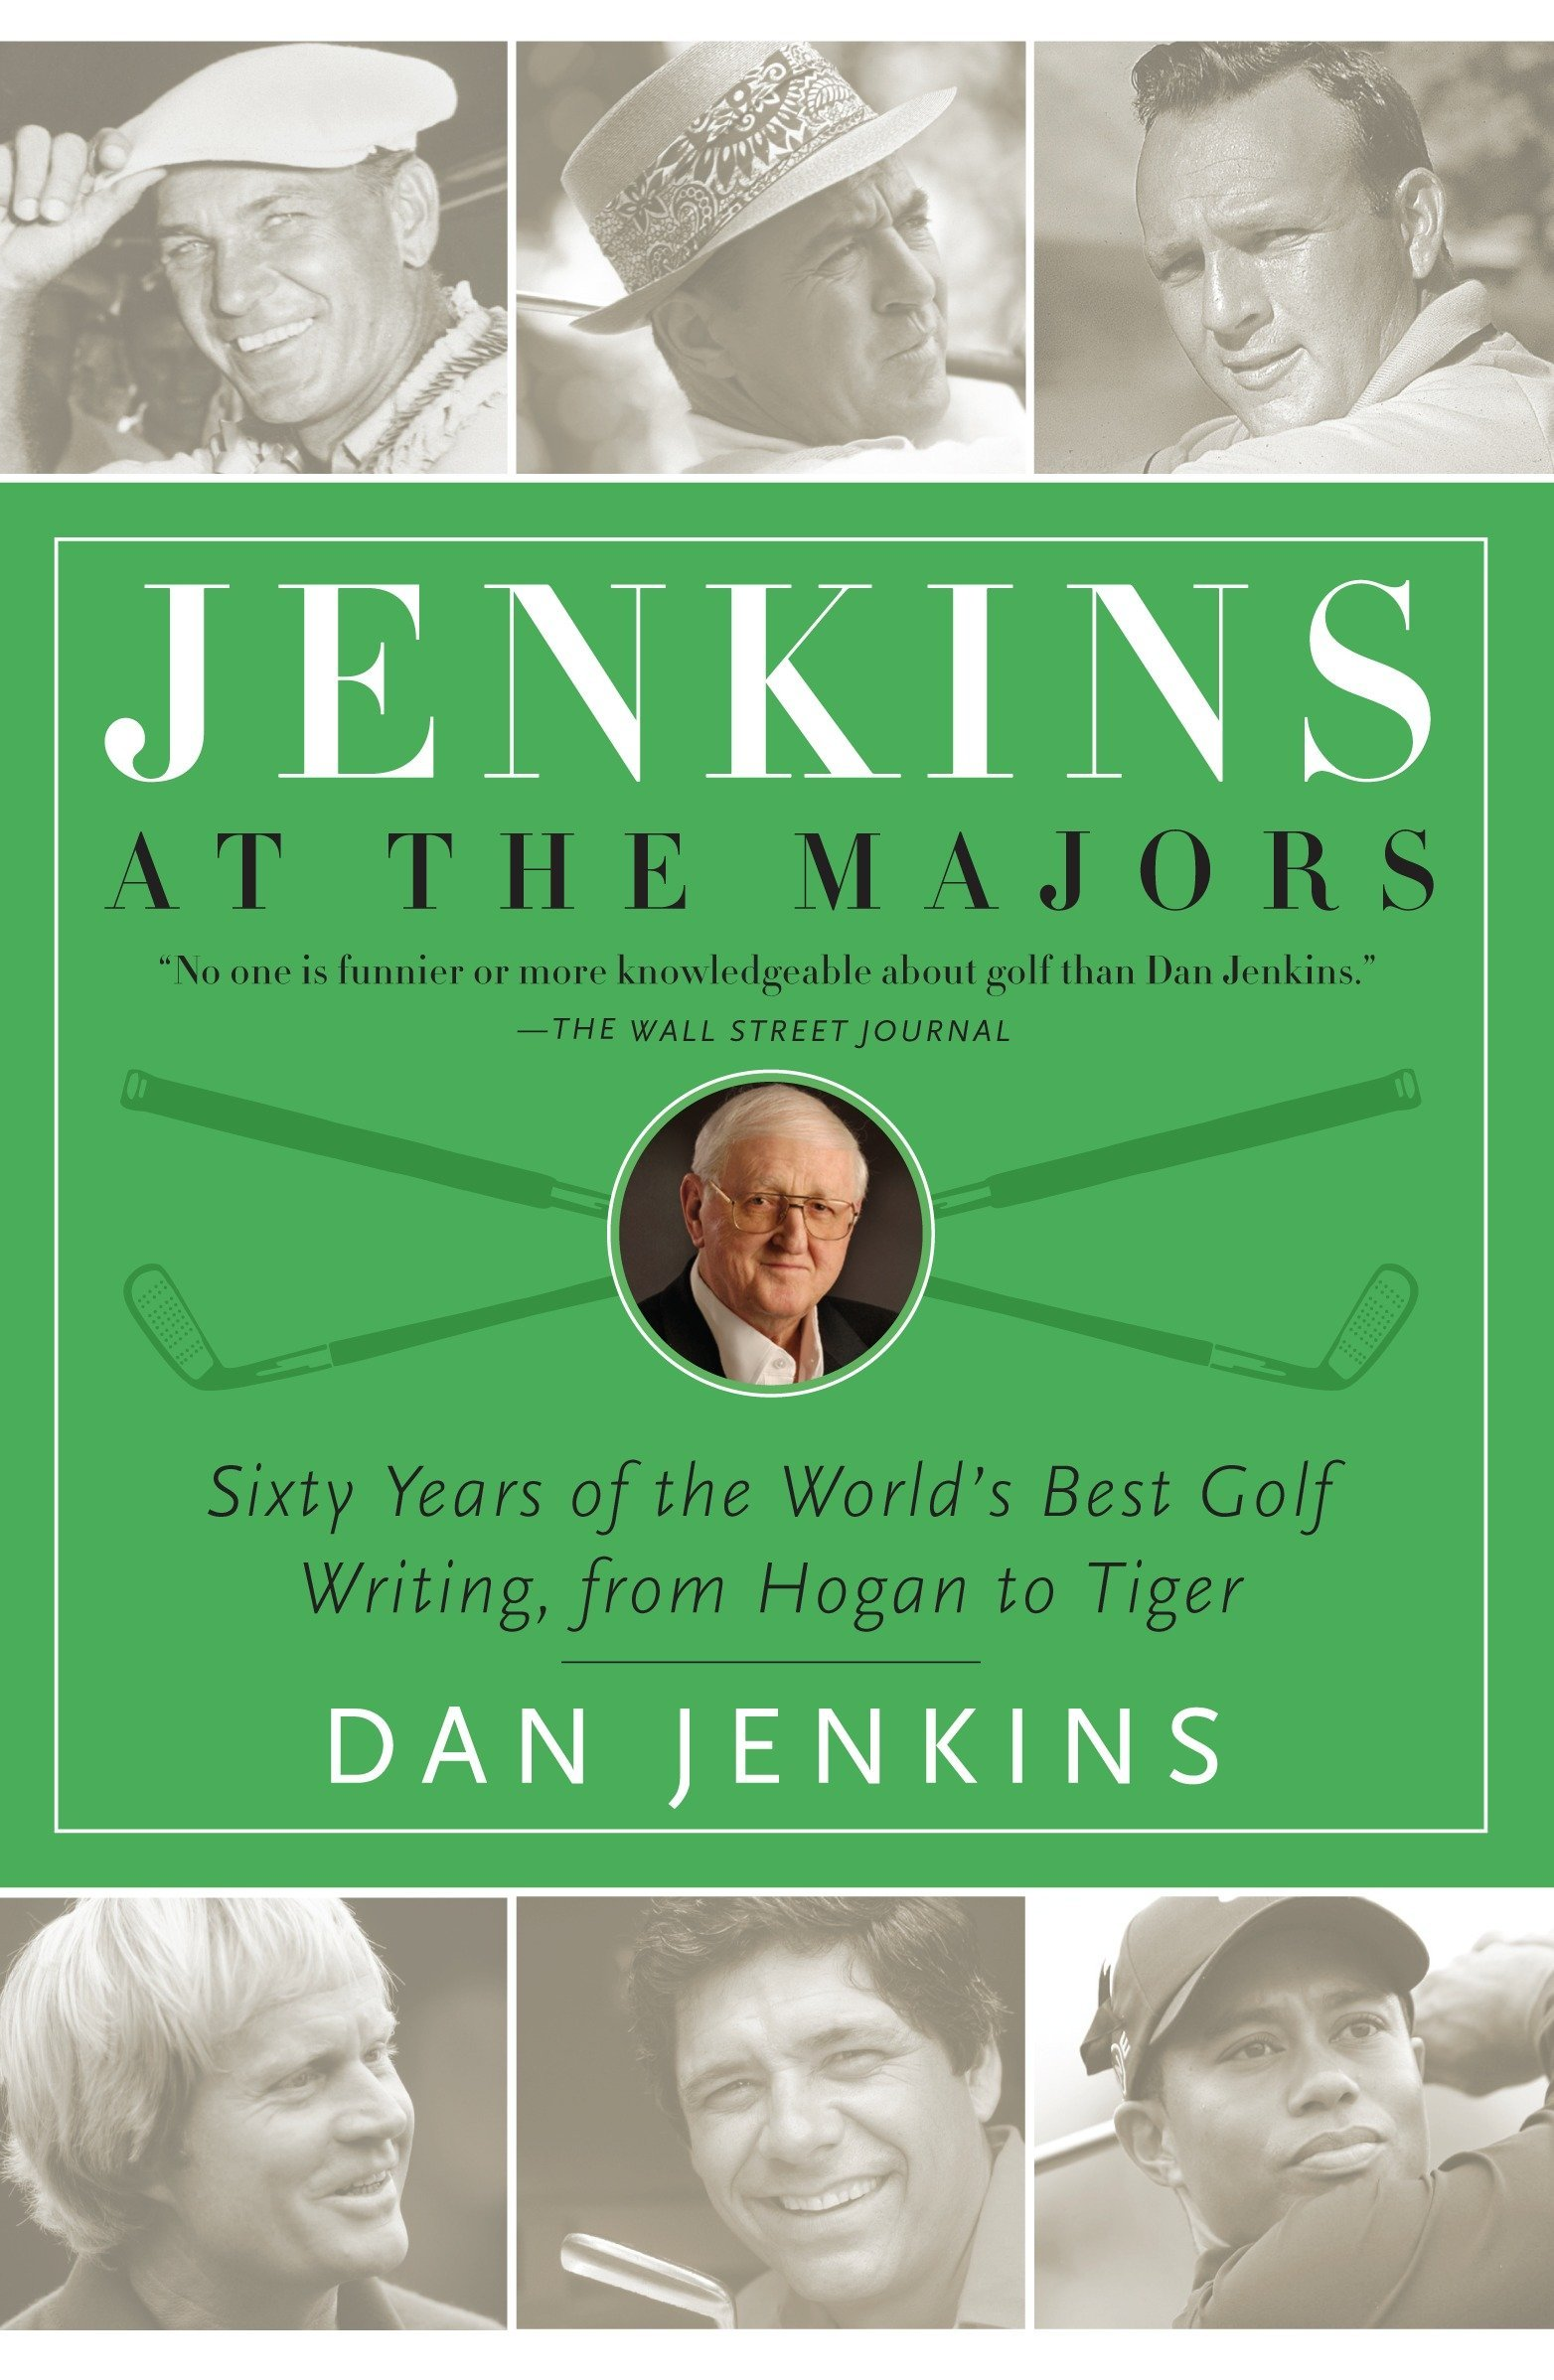 Jenkins at the Majors: Sixty Years of the World's Best Golf Writing, from Hogan to Tiger